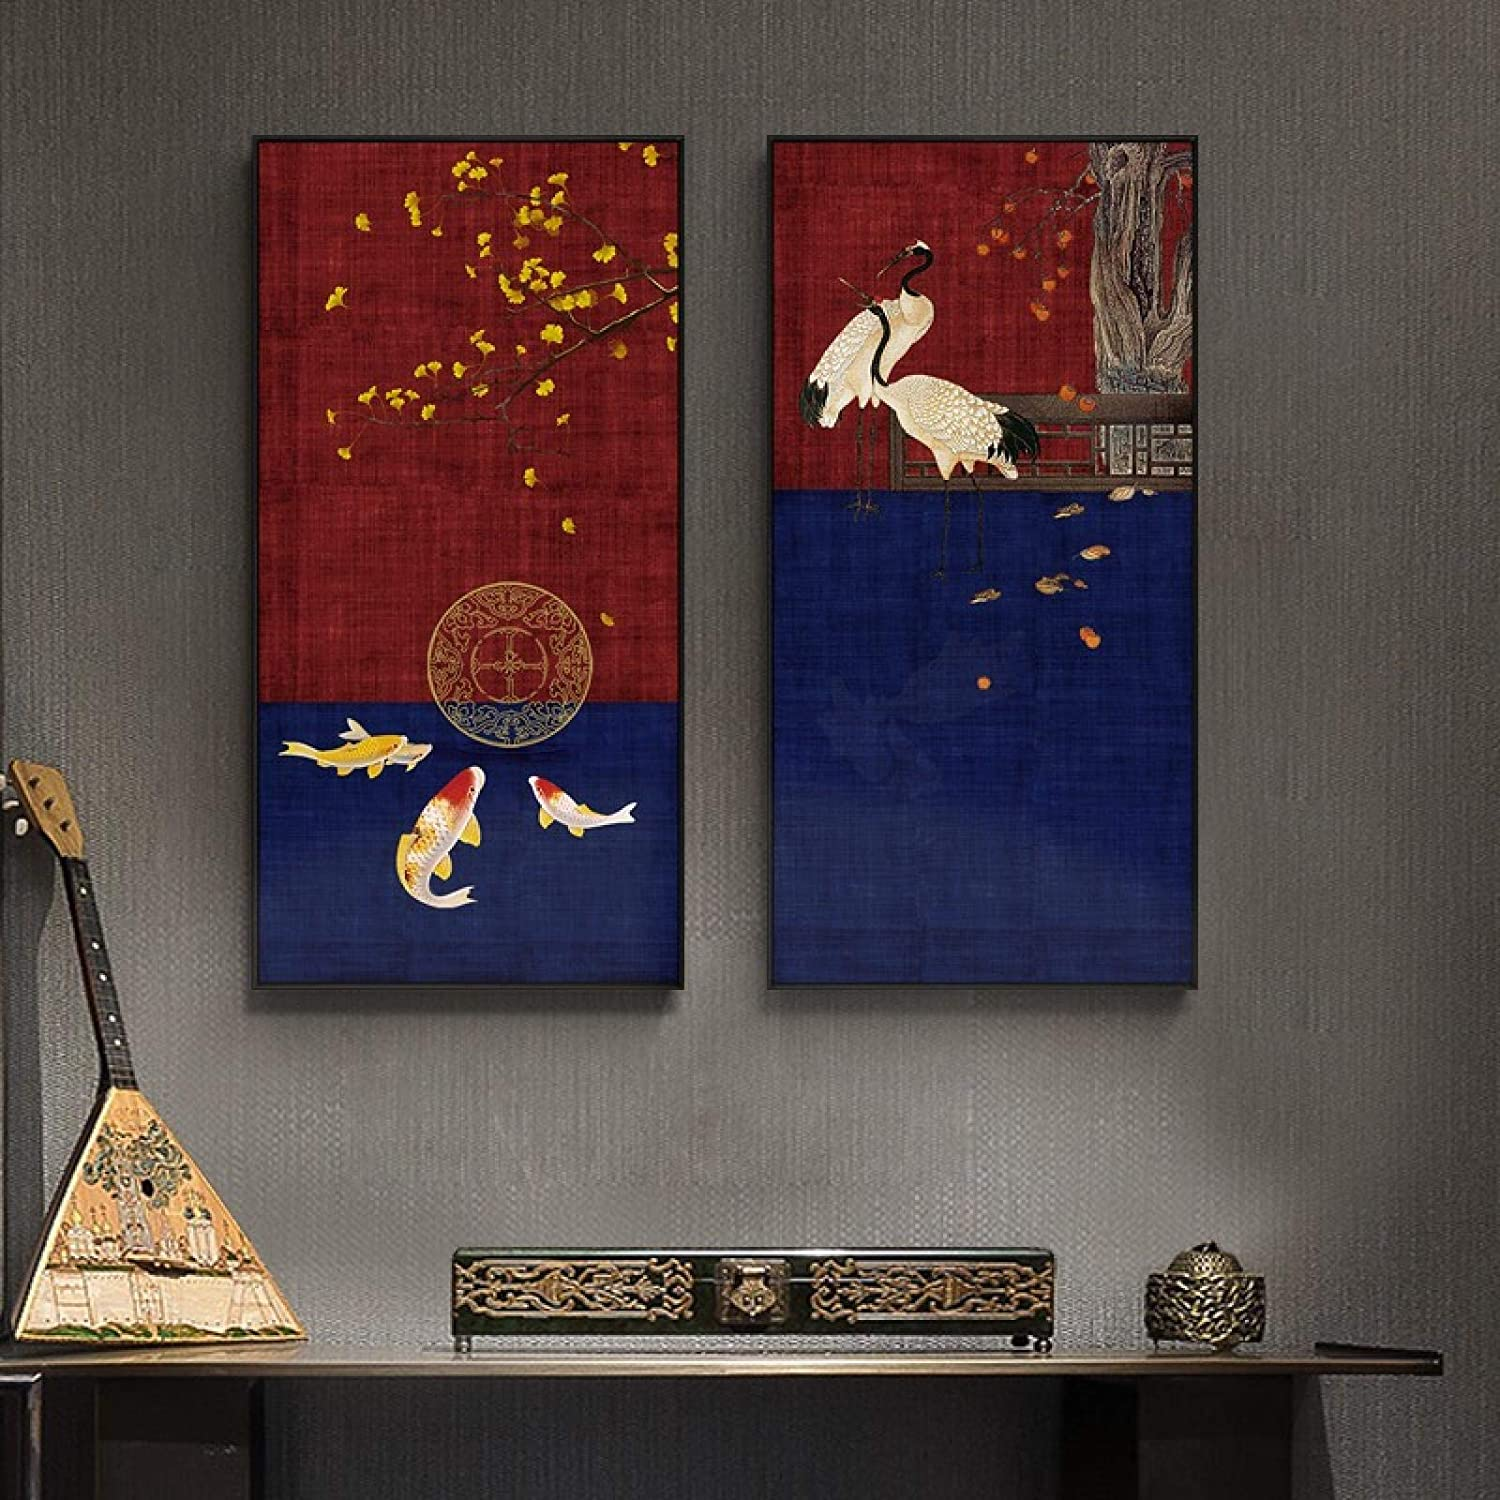 Dedication Canvas Painting New Chinese Carp Art Prints And Super Special SALE held W Posters Modern